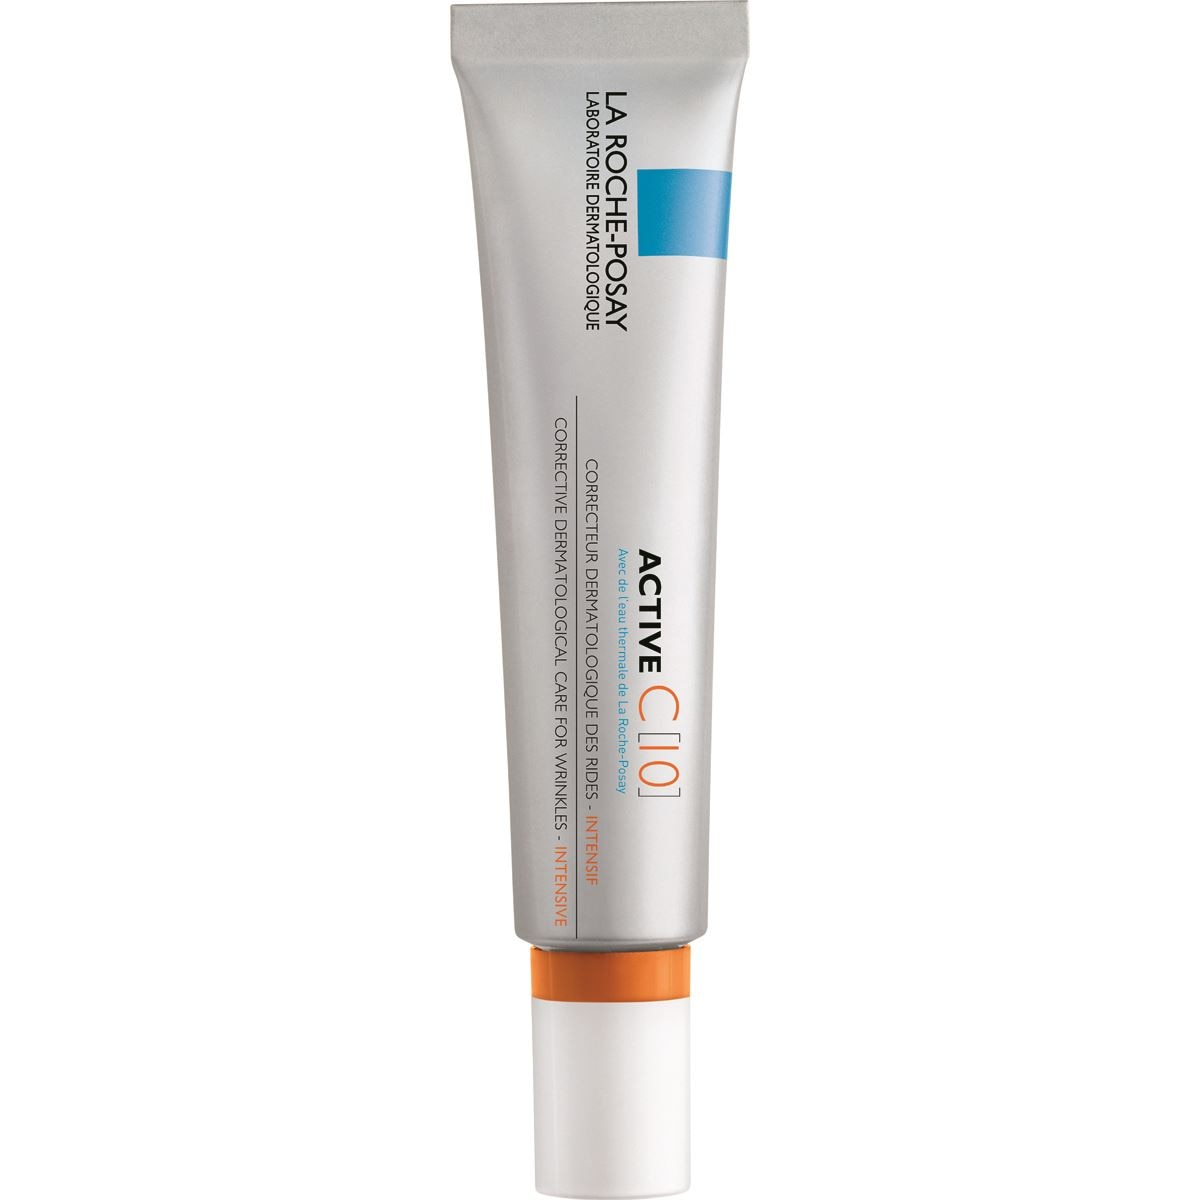 La roche-posay active c 10 30ml  - Sanborns